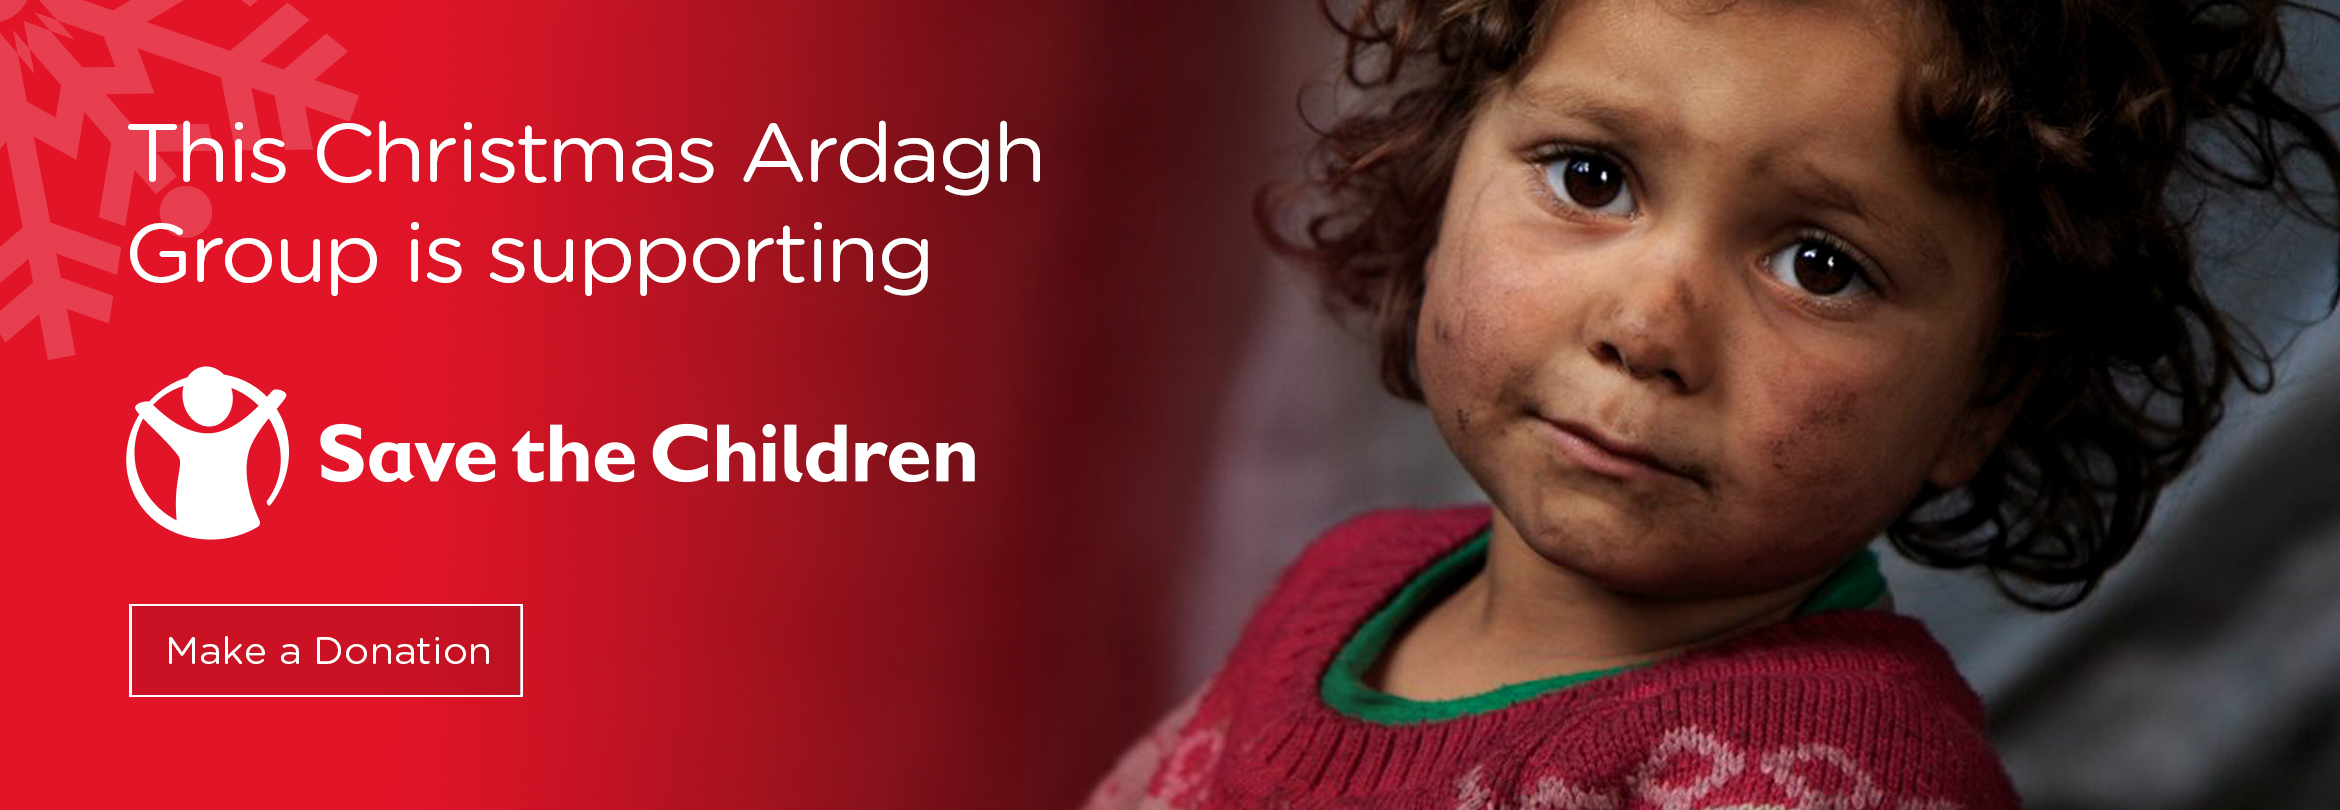 Join Ardagh Group help Save the Children